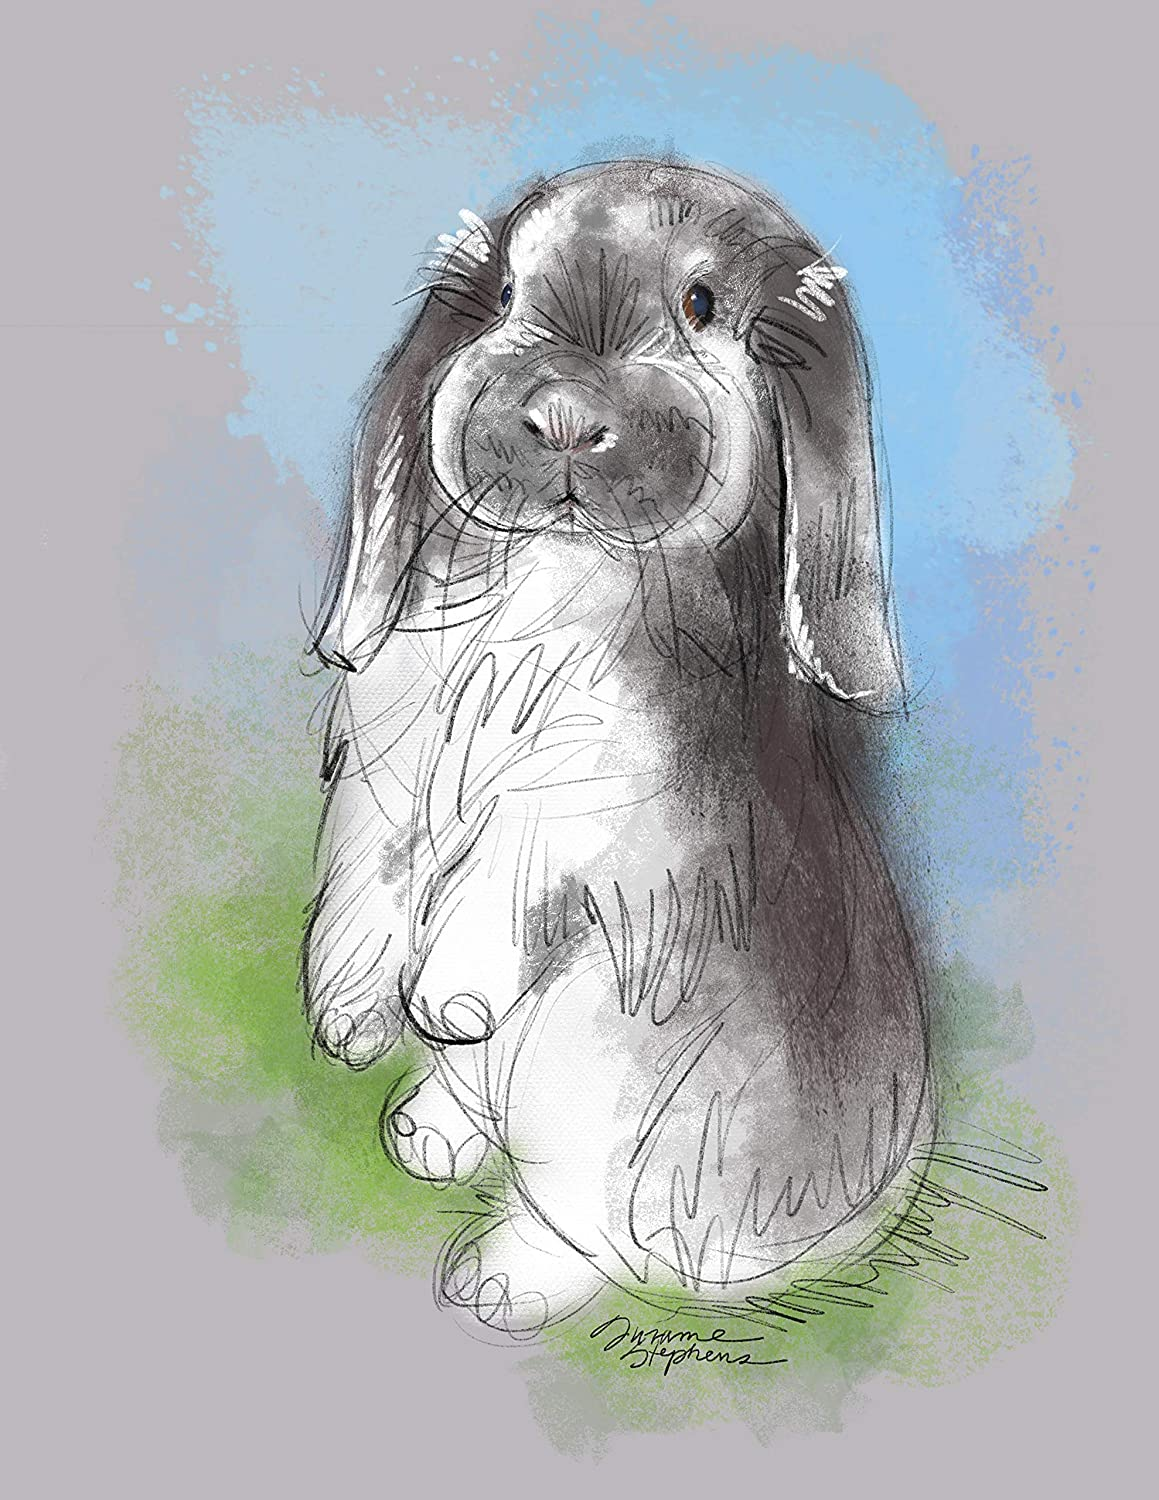 Holland Mini Lop Bunny Rabbit Gift 8 5x11 Art Print Of Painting By Suzanne Stephens Handmade